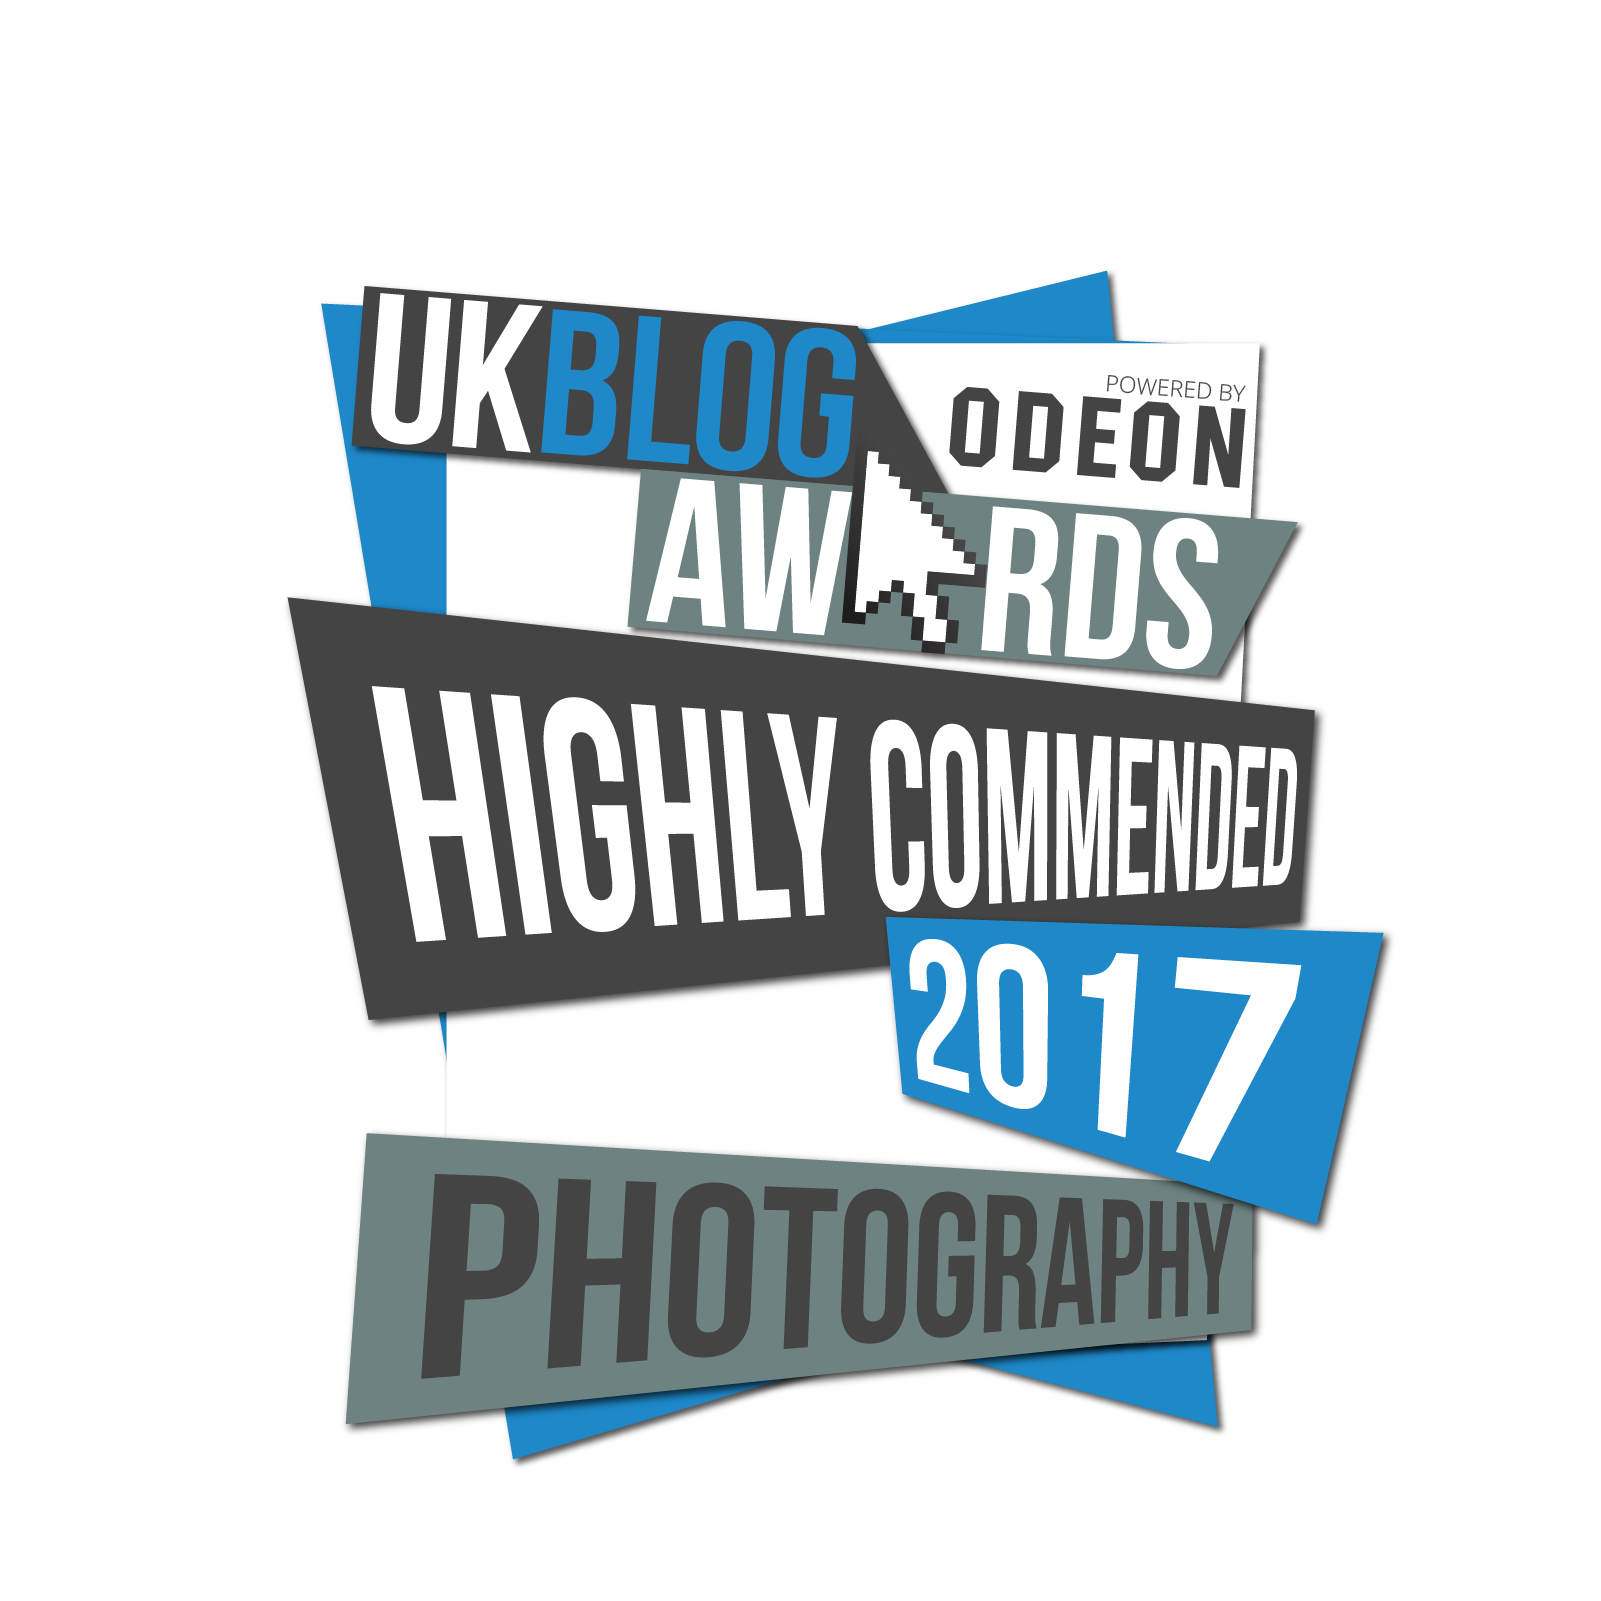 My Blog was Highly Commended in the UK Blog Awards 2017, in the Photography Category. (Click for more.)